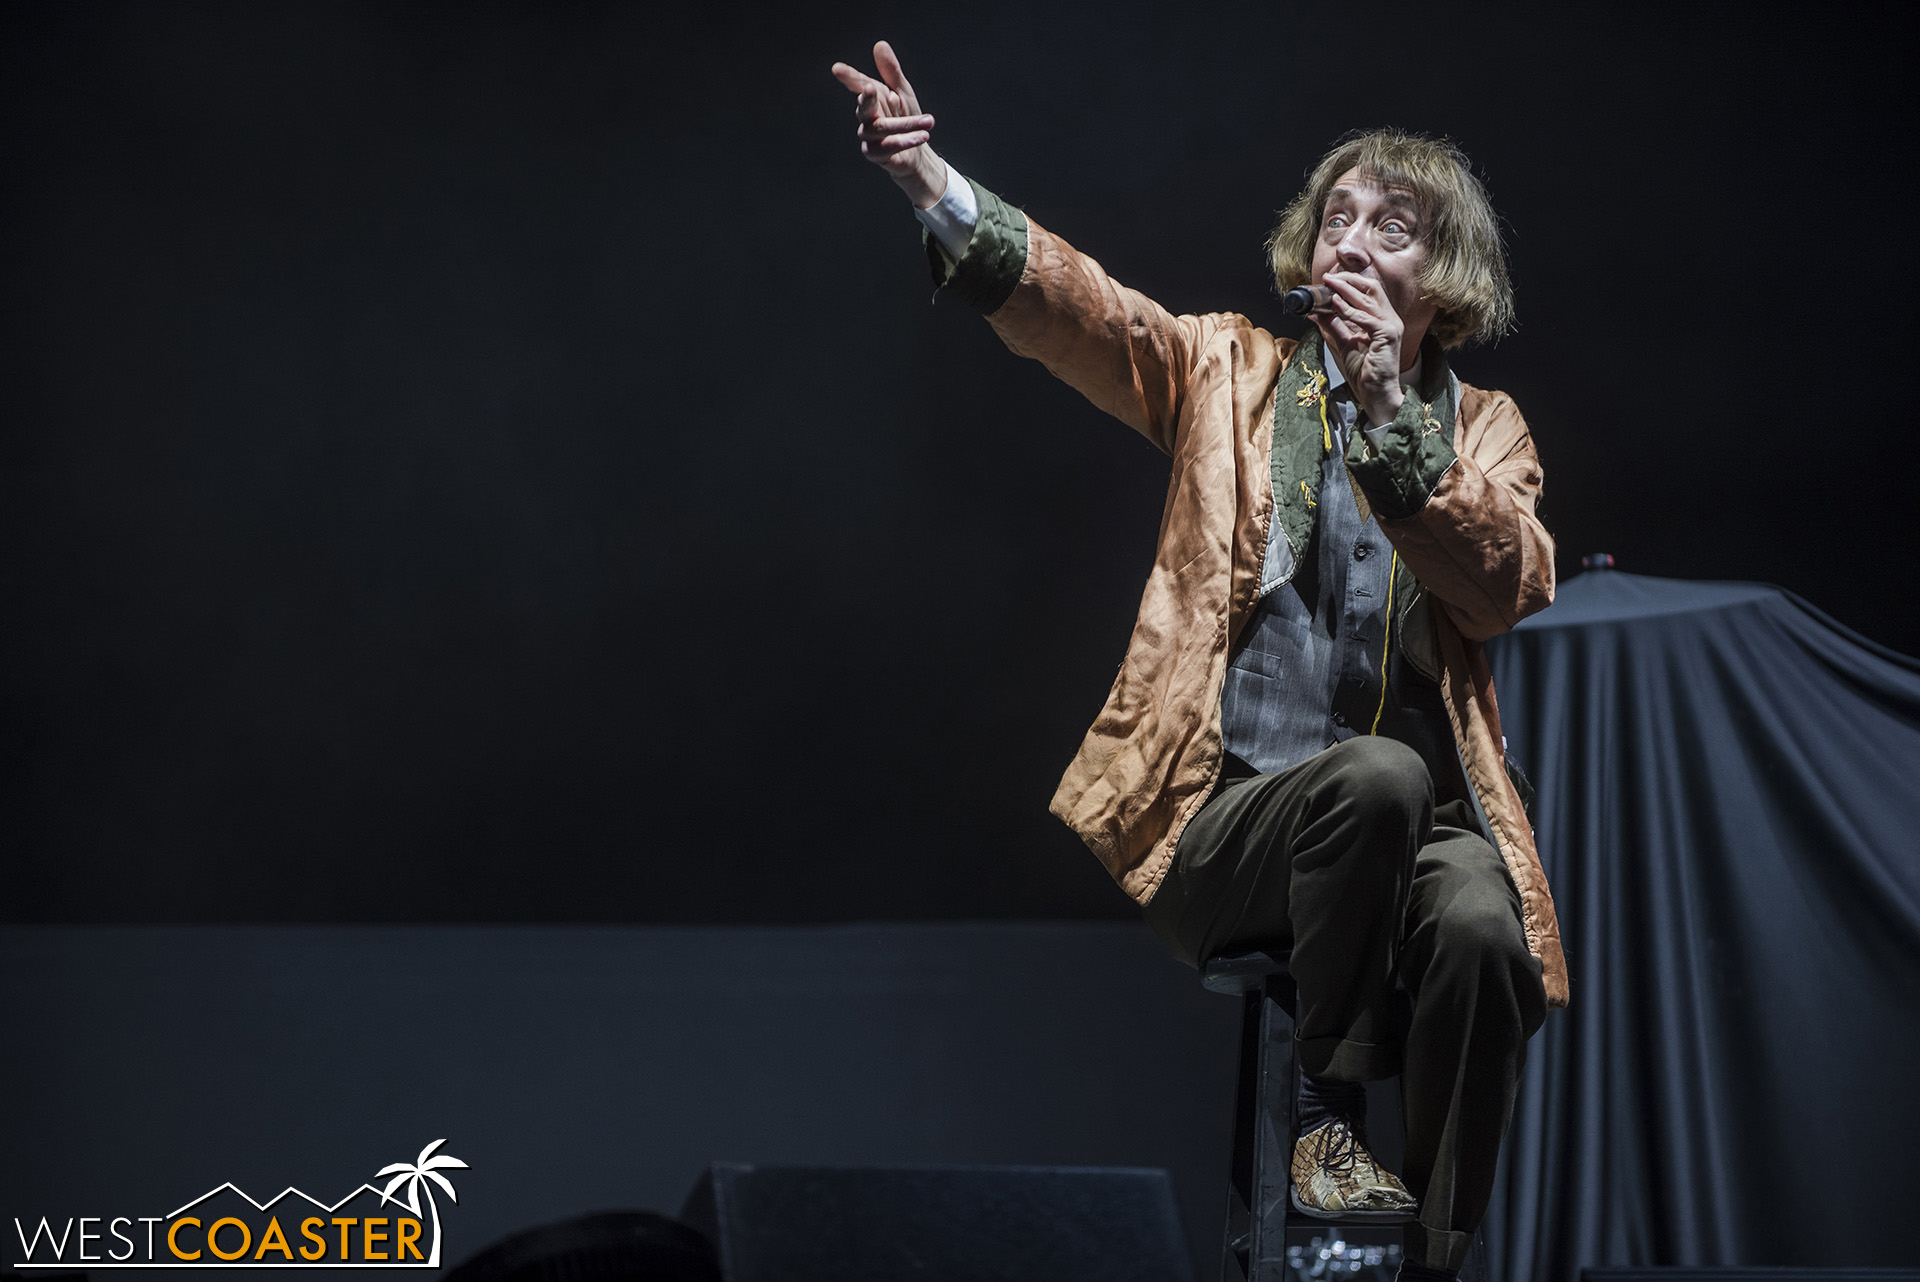 Emo Philips' dark, misdirectional, occasionally absurdist humor was a highlight of Saturday.